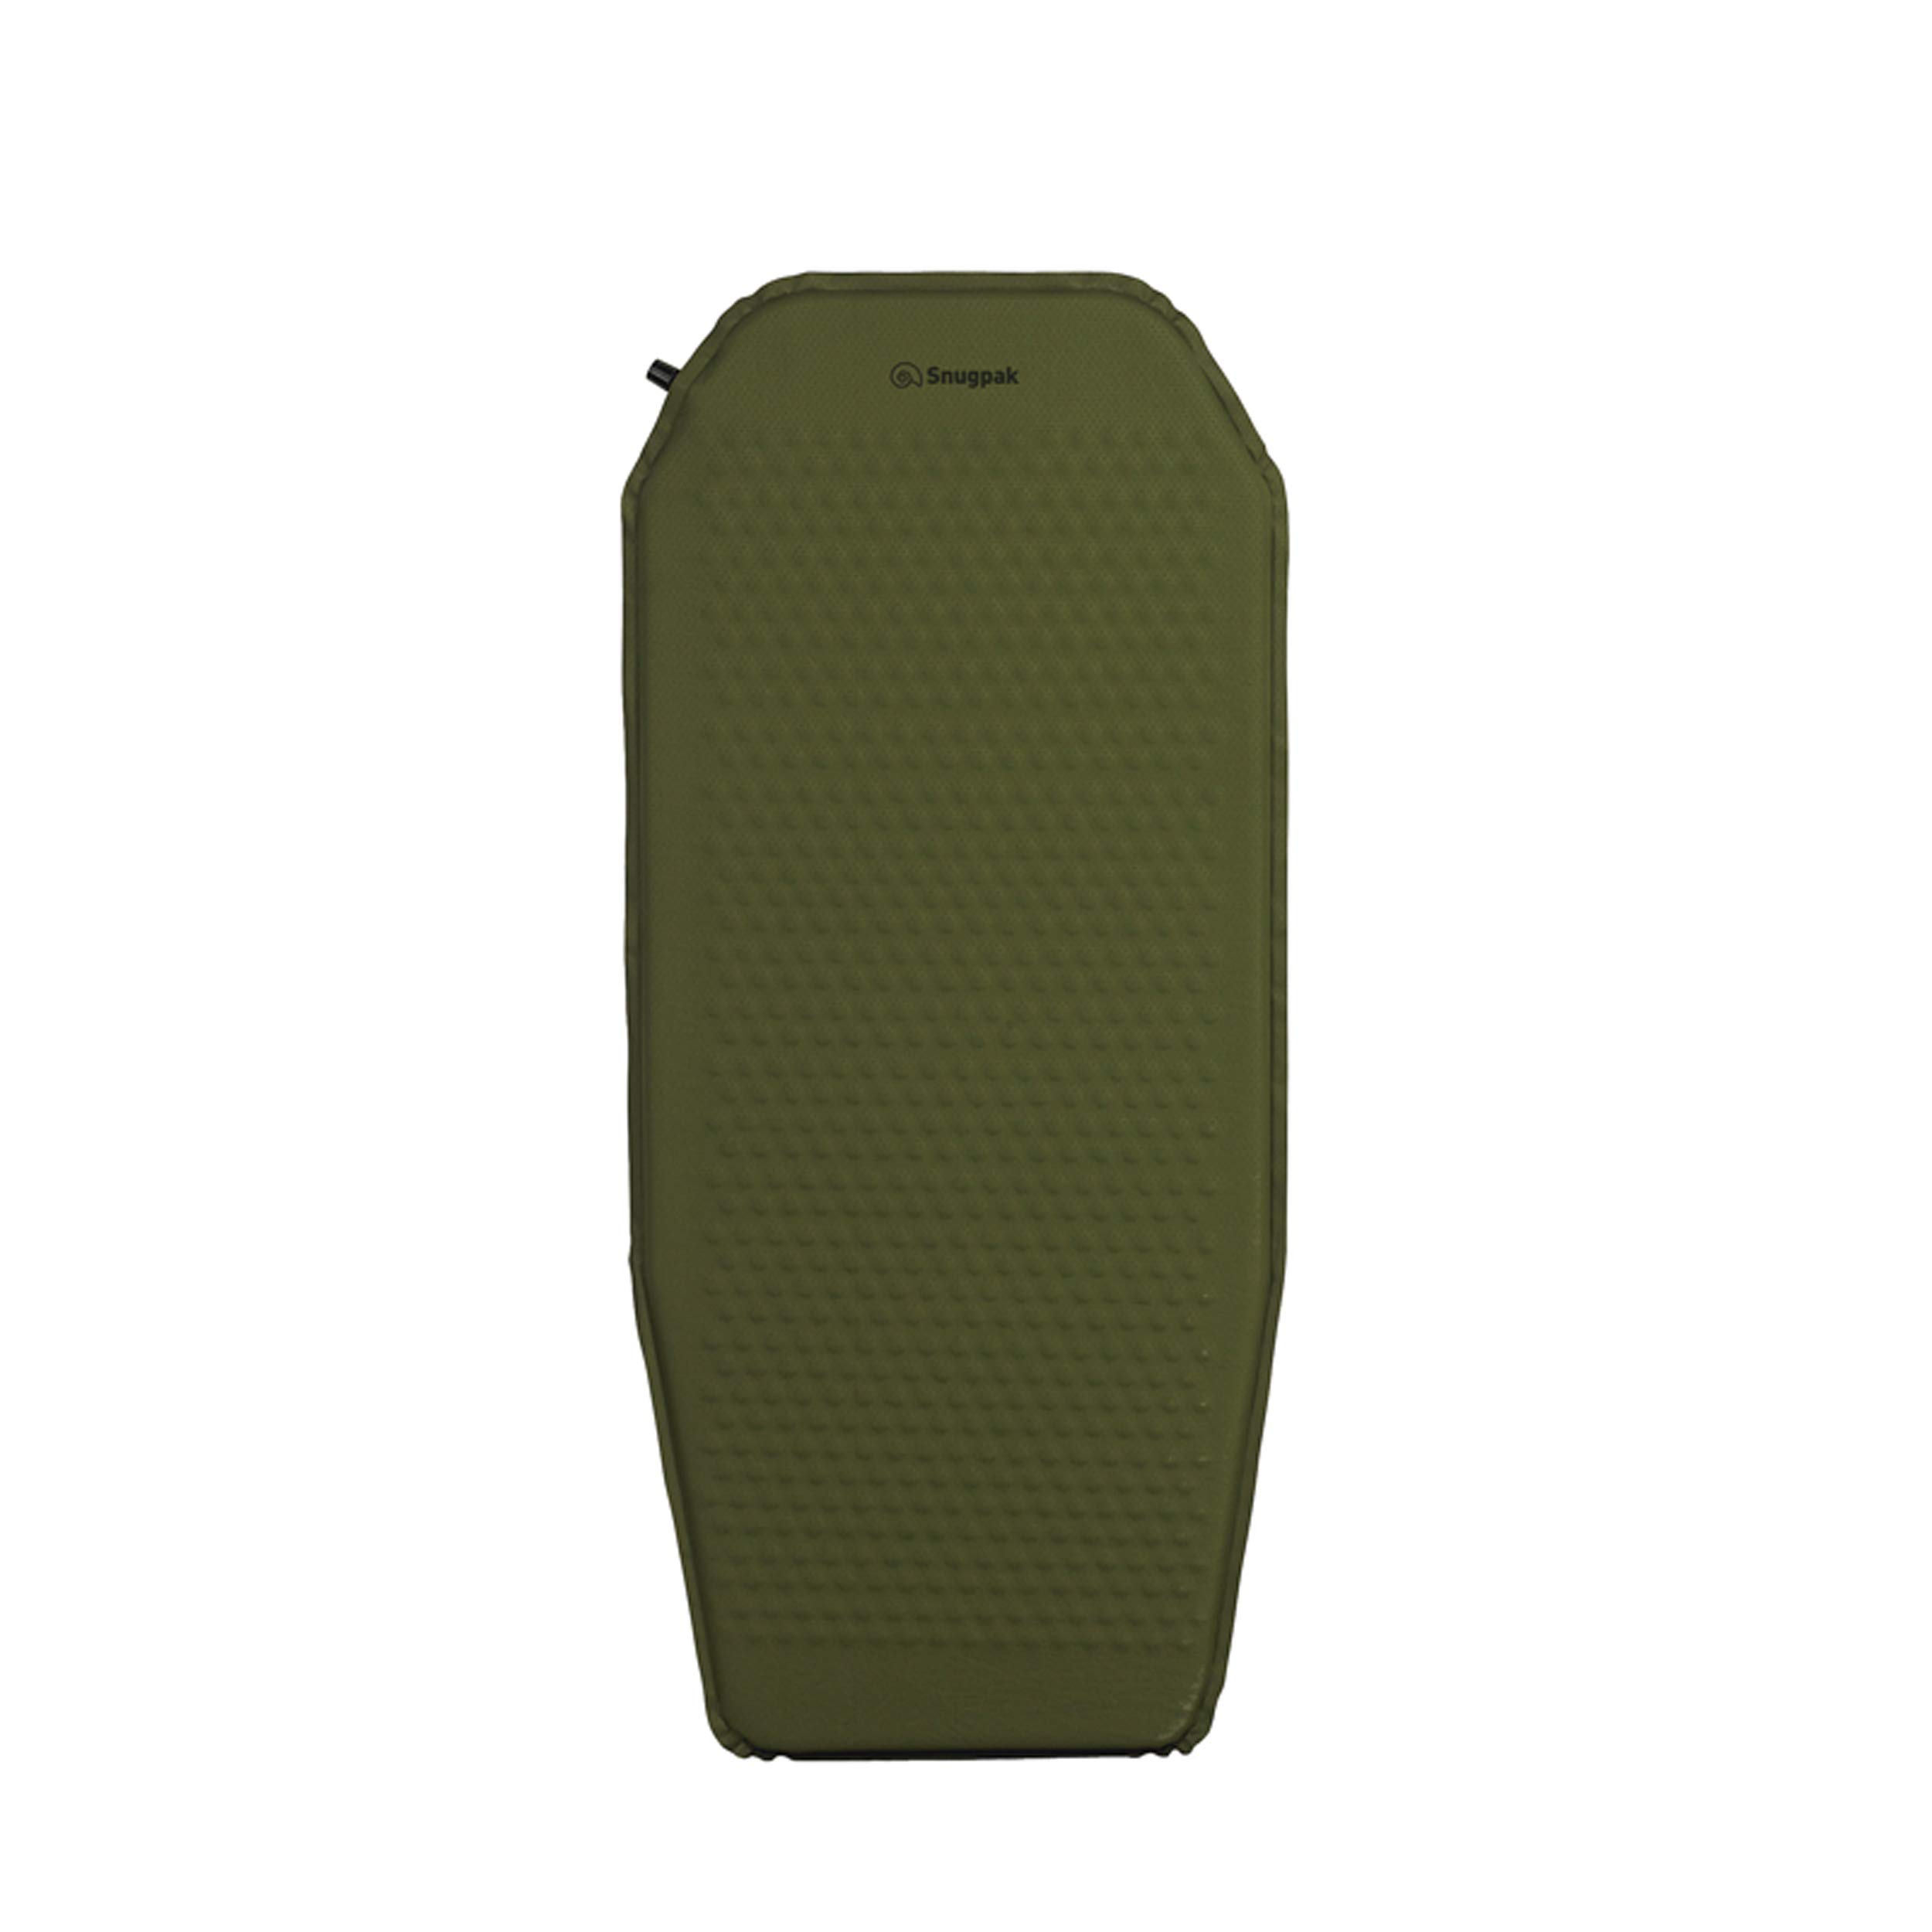 Snugpak Basecamp Ops Self Inflating Midi Mat, Air Mat with Non-Slip Bottom, Olive by Snugpak